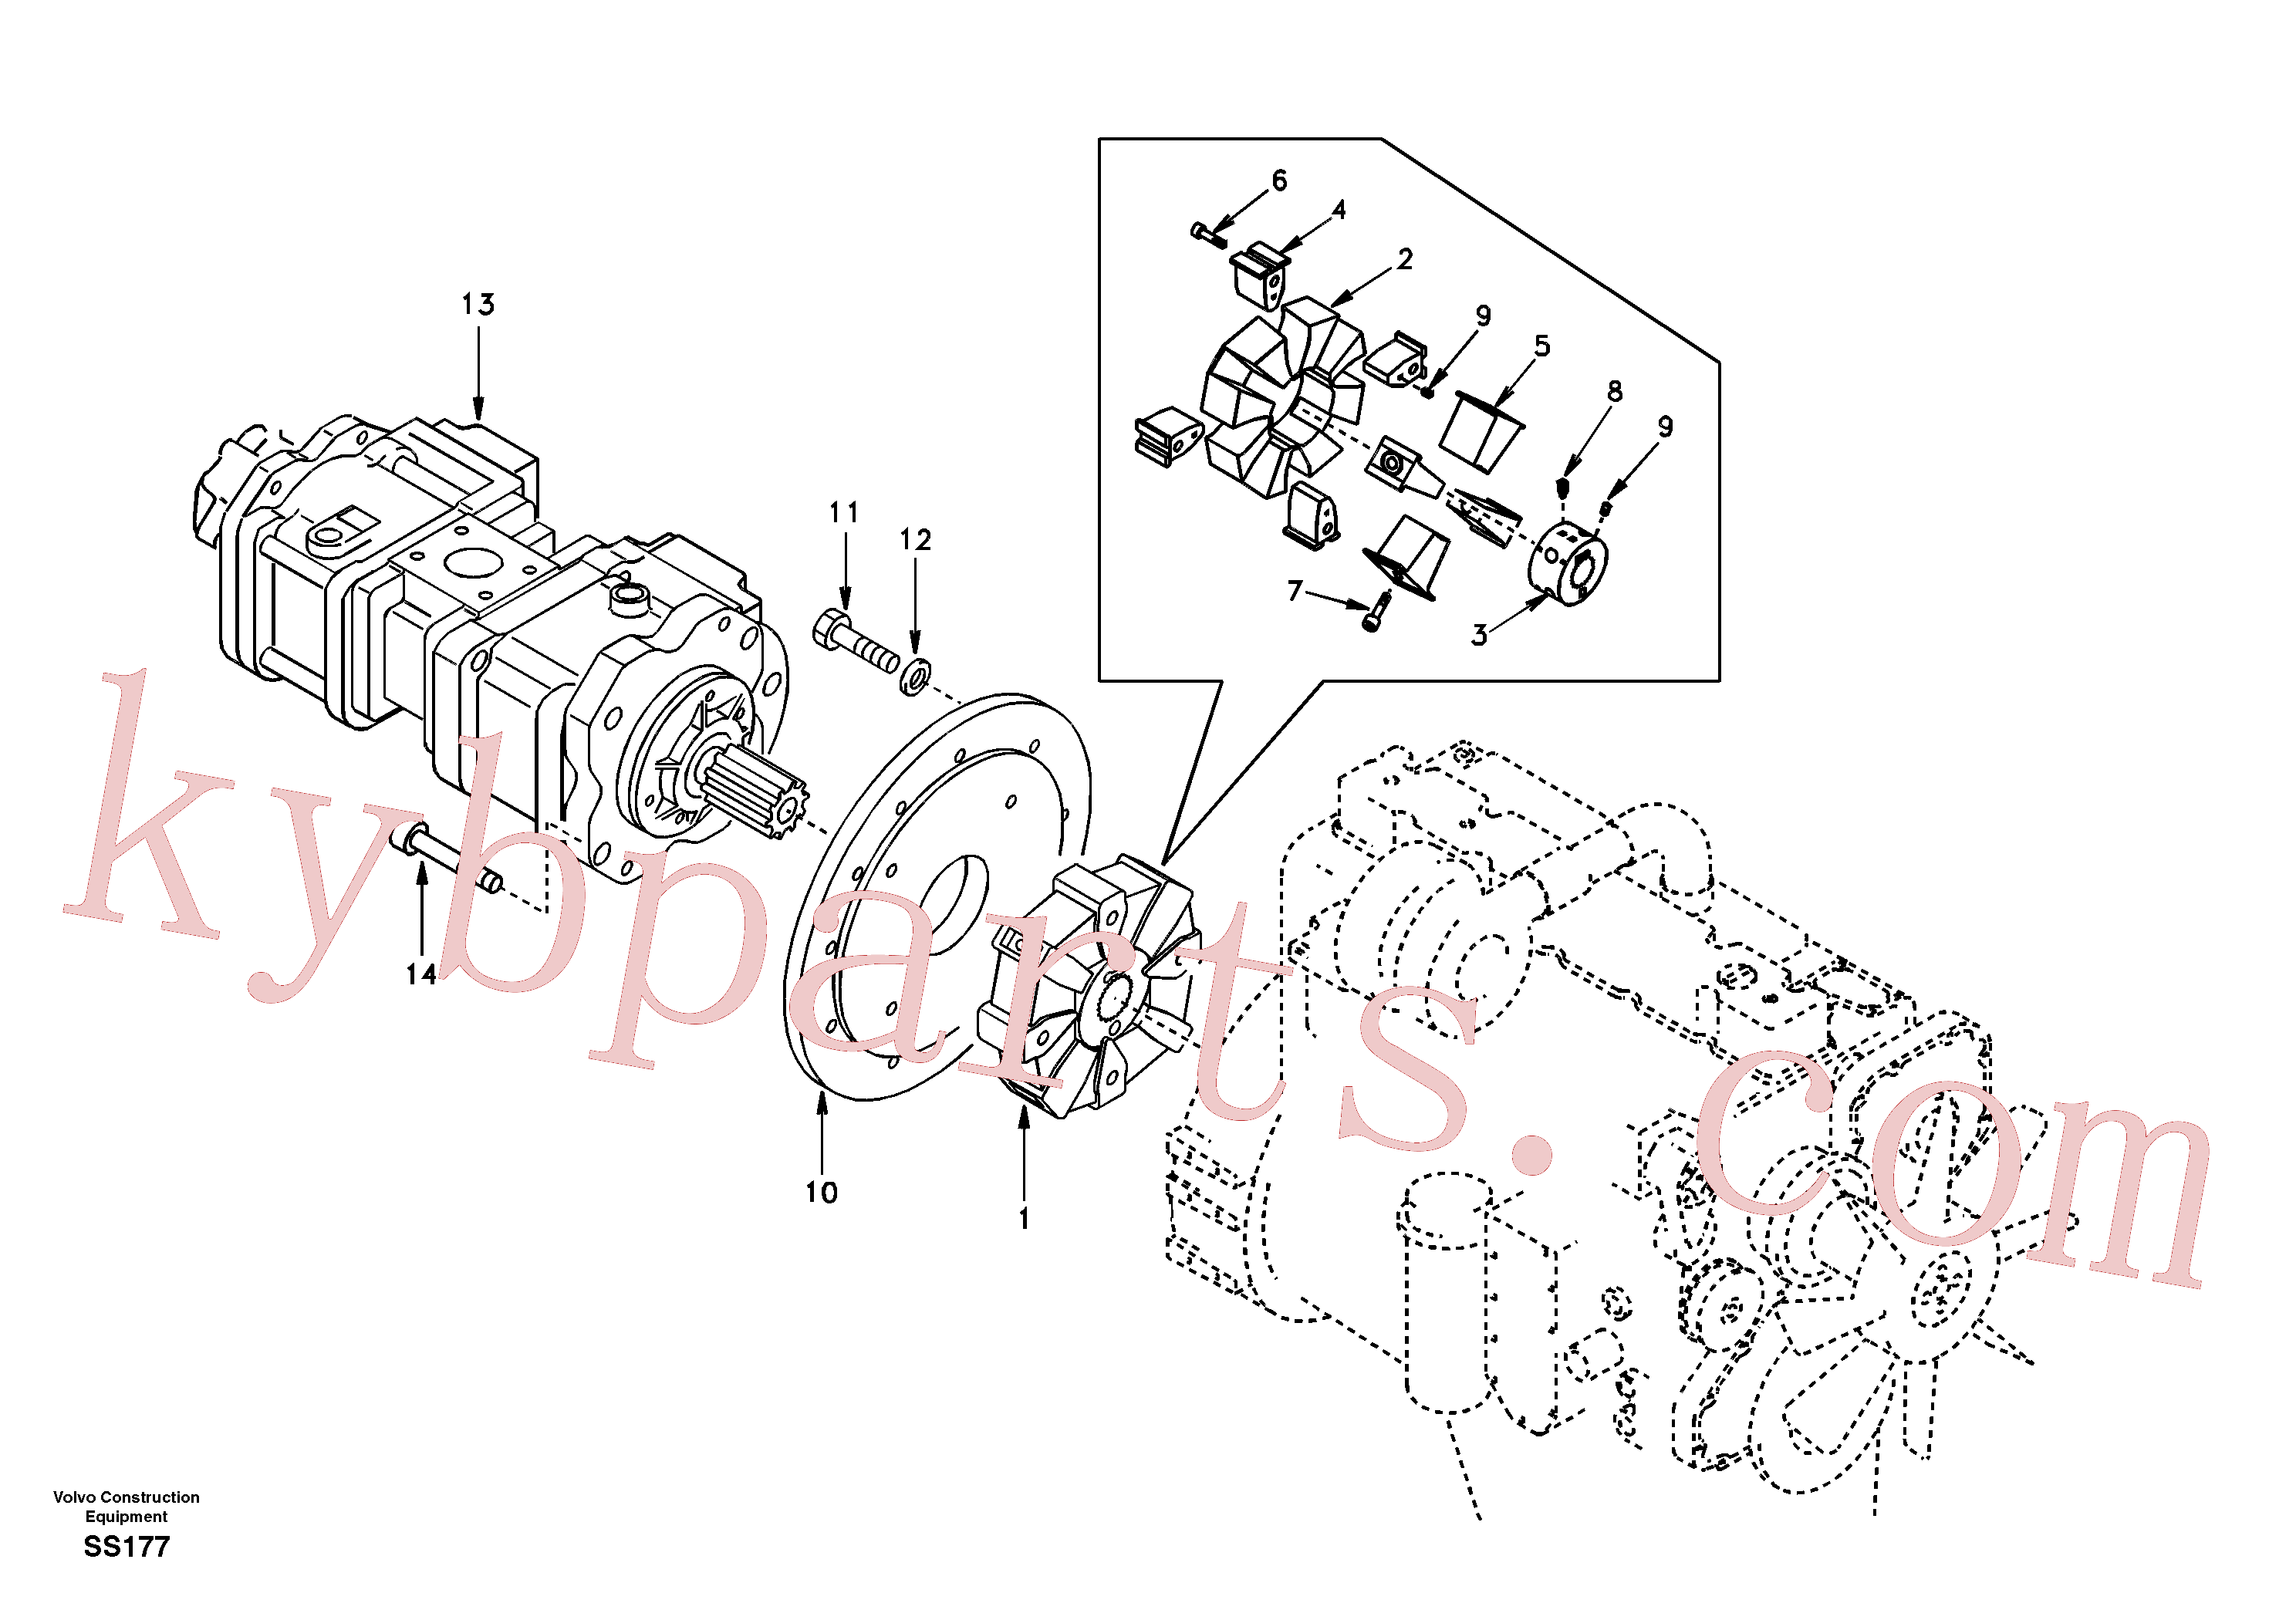 SA1012-01350 for Volvo Pump gearbox with assembling parts(SS177 assembly)